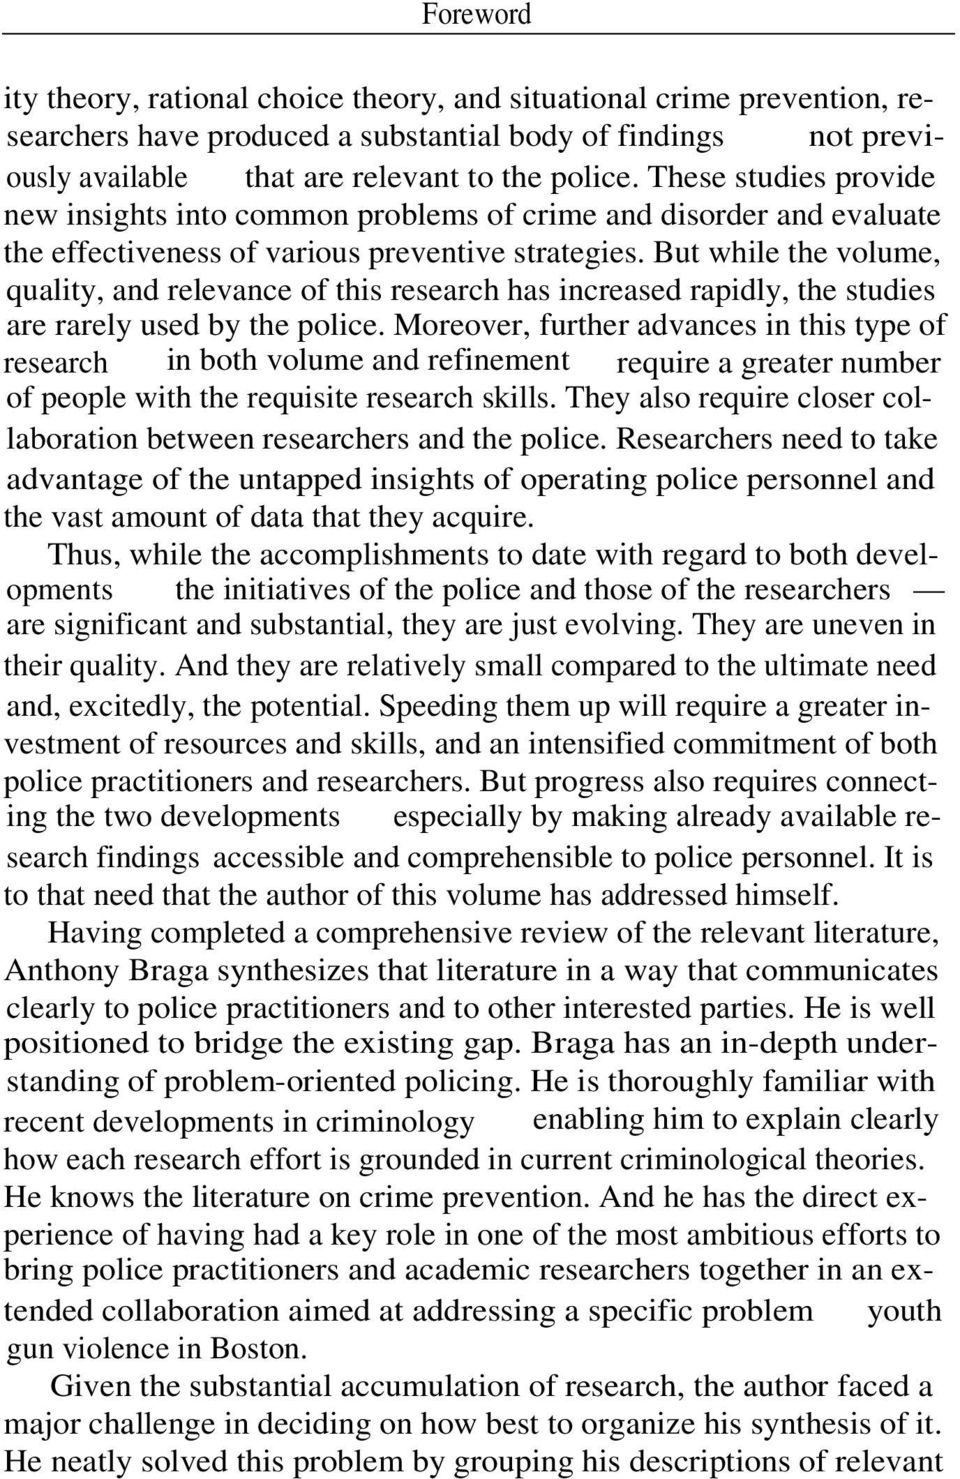 But while the volume, quality, and relevance of this research has increased rapidly, the studies are rarely used by the police.